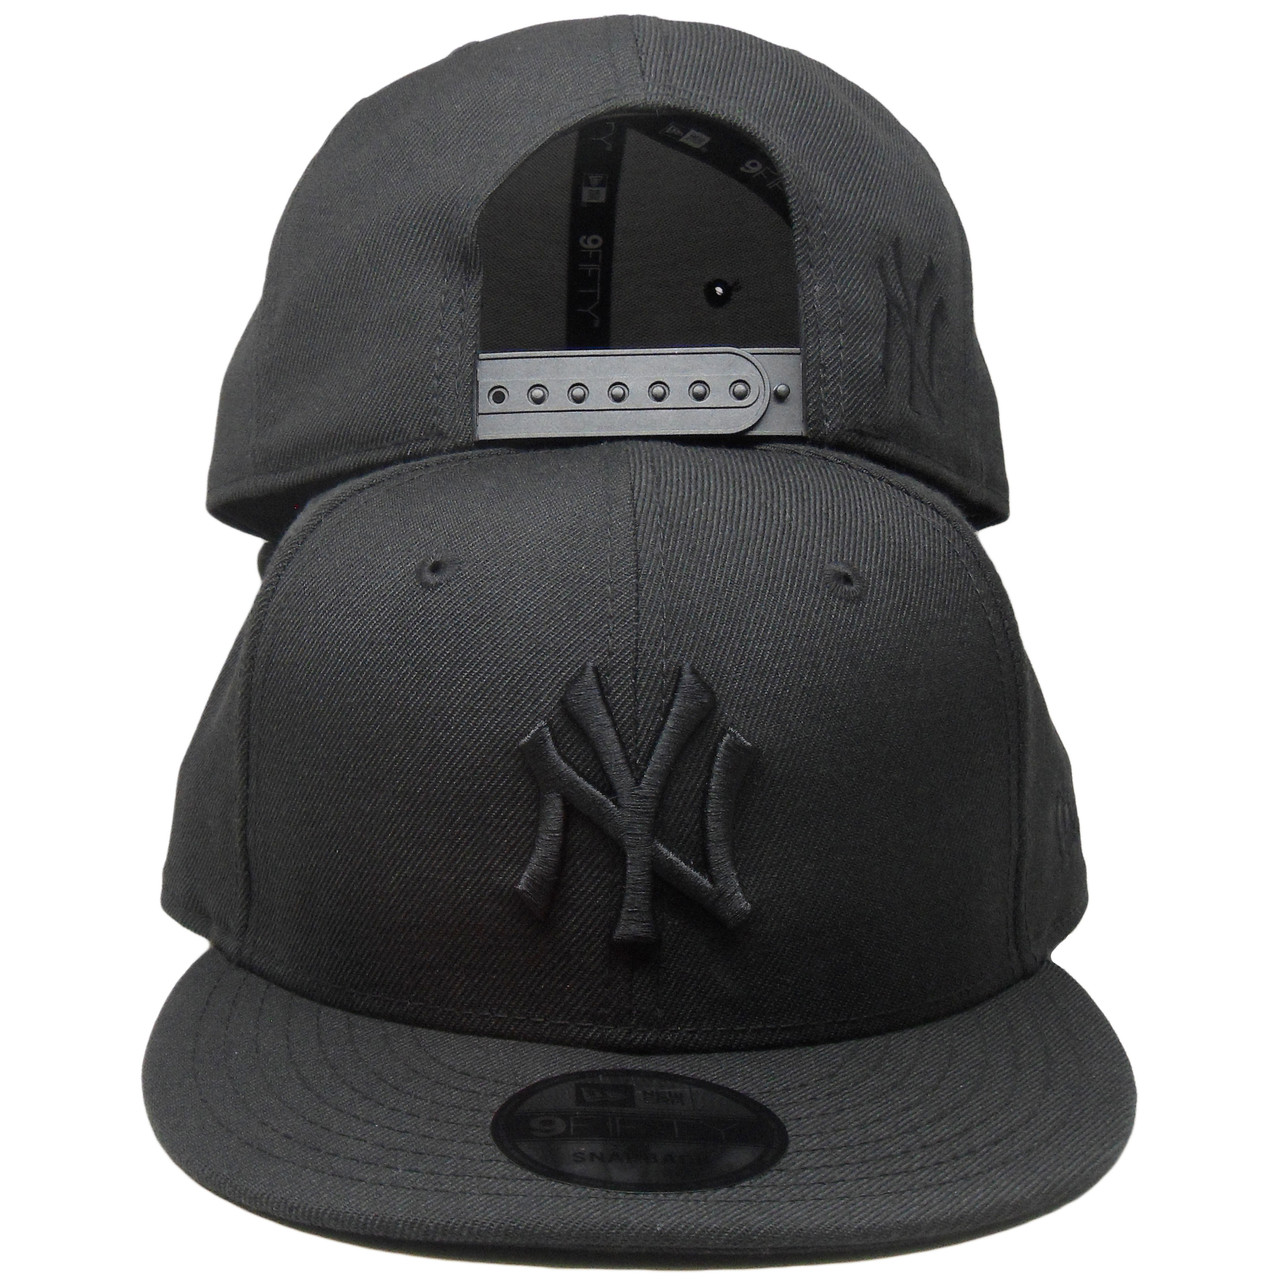 New York Yankees New Era Custom 9Fifty Snapback Hat - Black Tonal -  ECapsUnlimited.com 3b8c940e25d